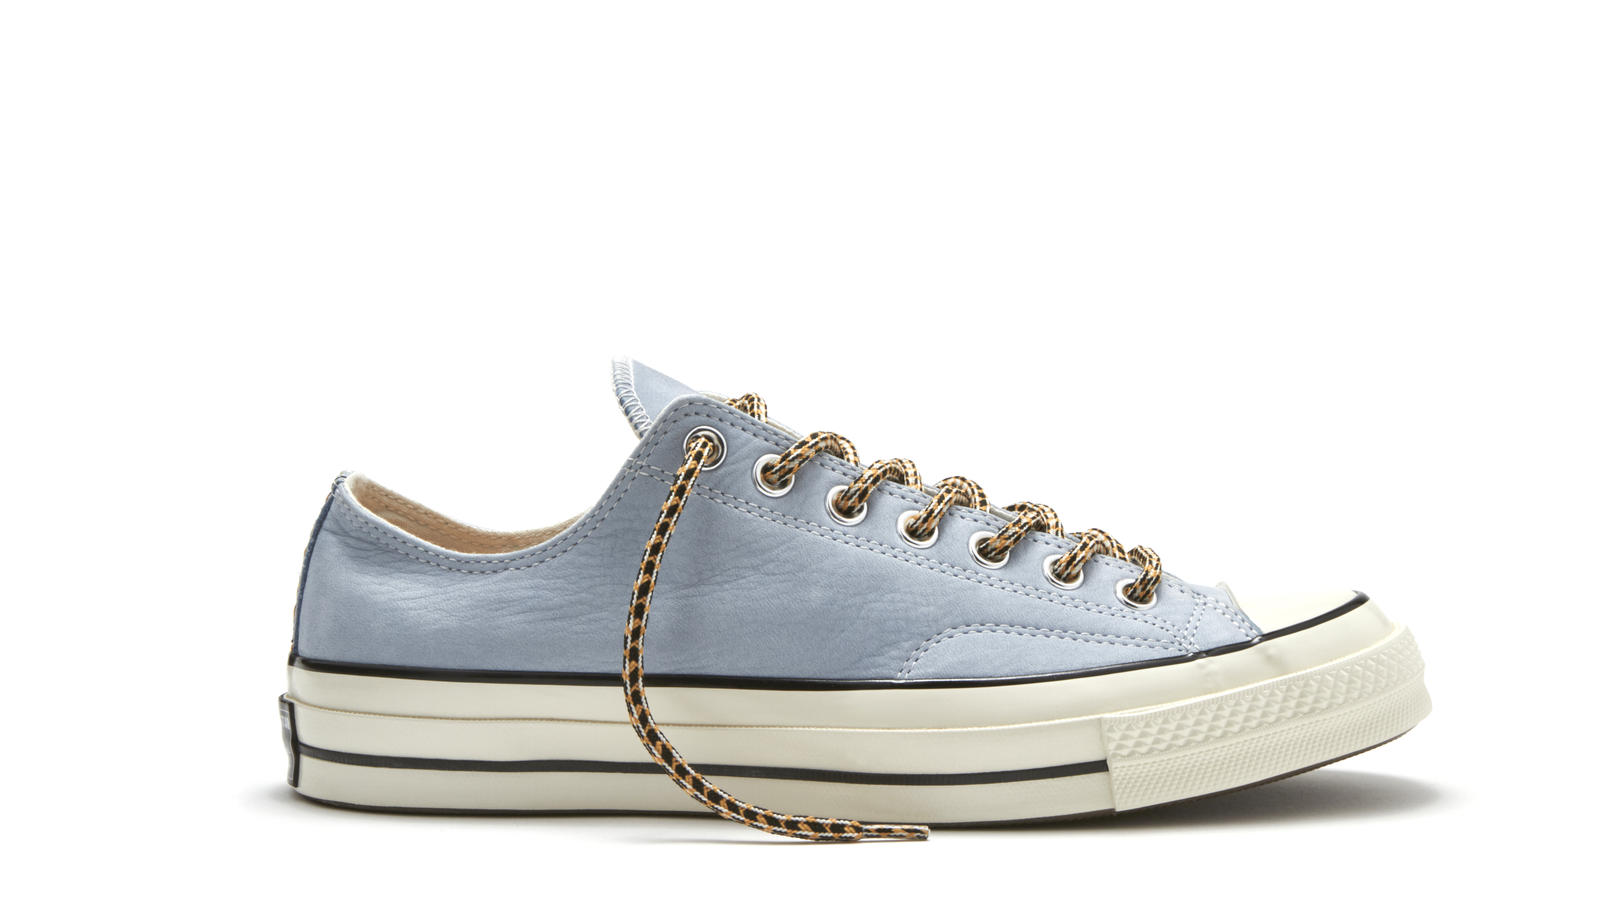 8ff3353df554 NEW MATERIALS AND PASTEL HUES INSPIRE THE NEW CONVERSE COLLECTIONS ...